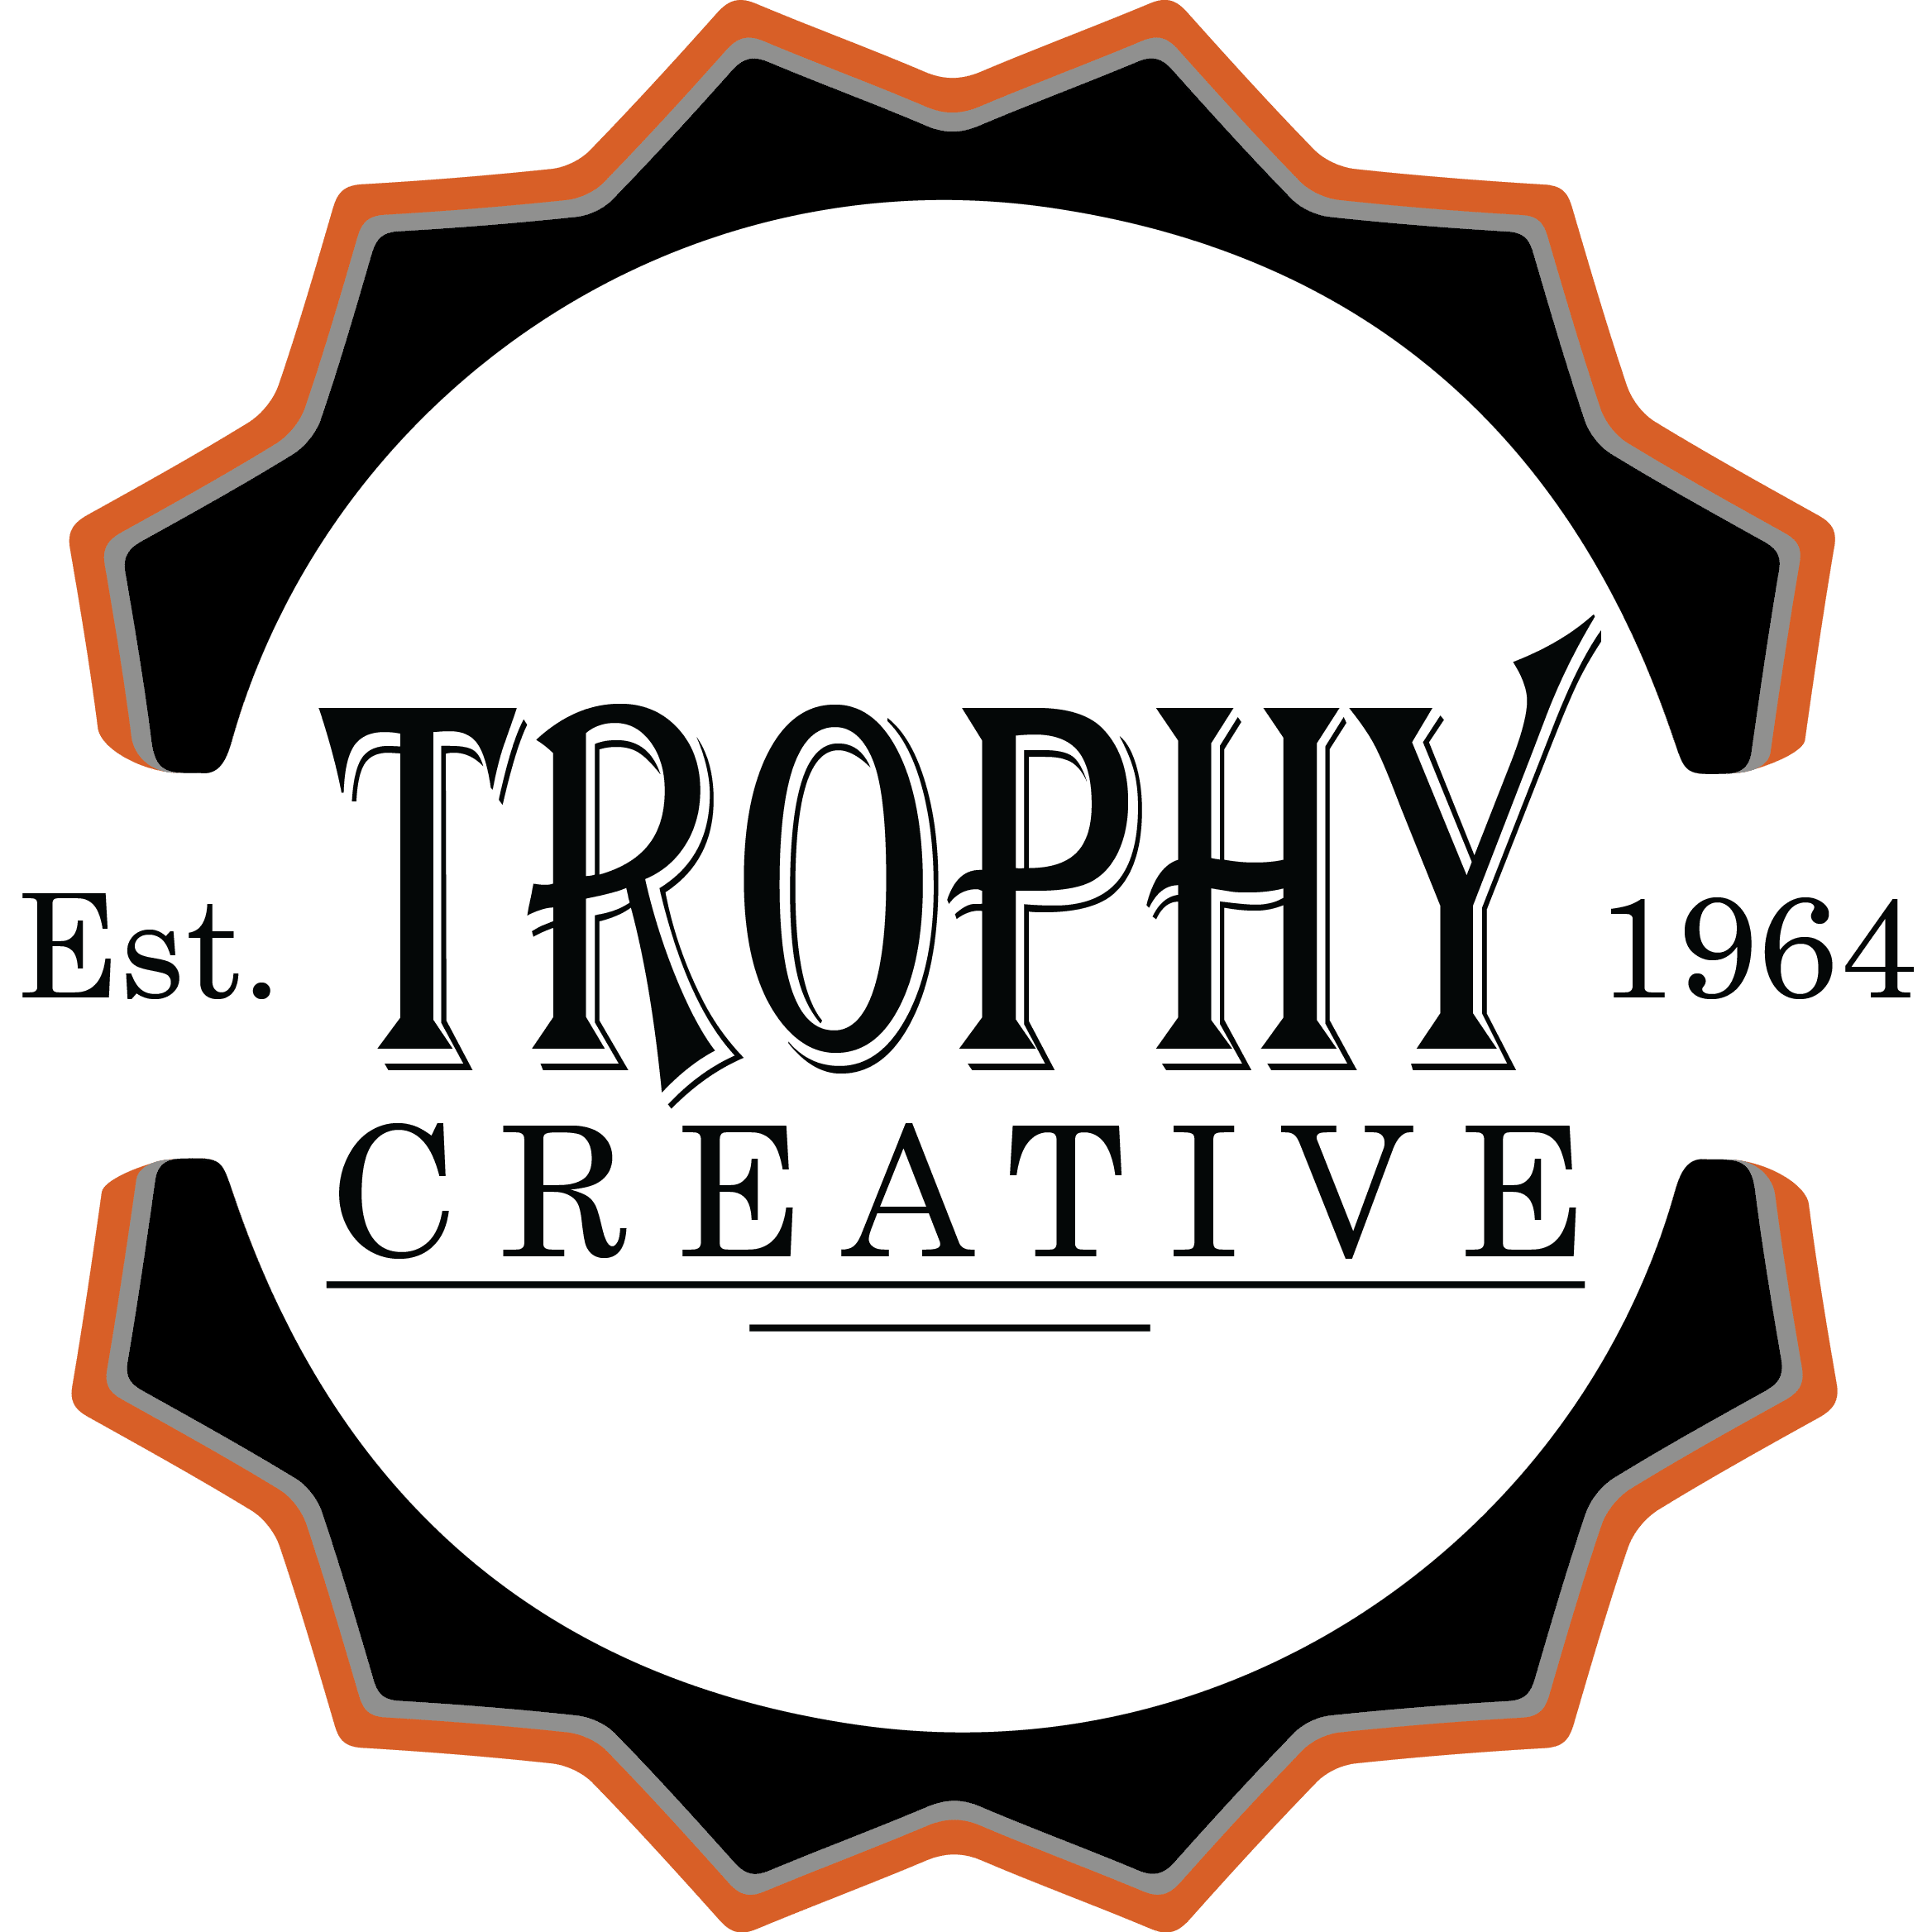 Trophy Creative LLC - Cheyenne, WY - Model & Crafts